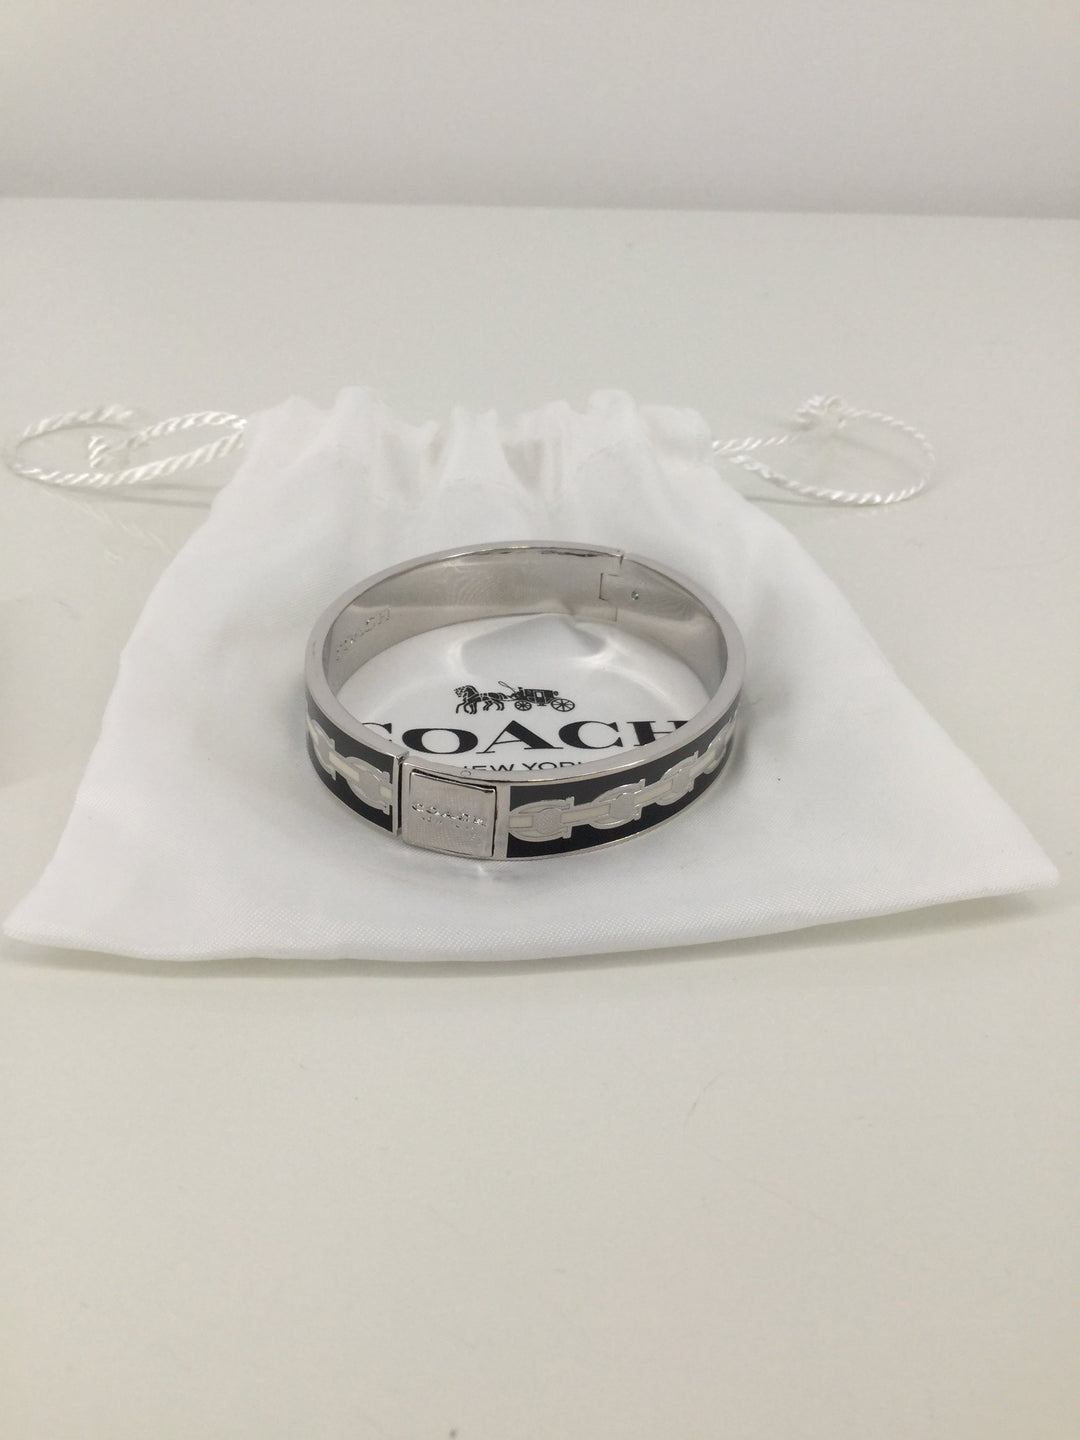 Coach Silver Bracelet - <P>THIS COACH BRACELET IS BEAUTIFUL! IT HAS A C PATTERN ON IT AND IT COMES WITH THE PROTECTIVE BAG. IT OPENS AND CLOSES TO PUT IT ON. THIS BRACELET IS IN EXCELLENT CONDITION WITH LITTLE TO NO SIGNS OF WEAR.</P>